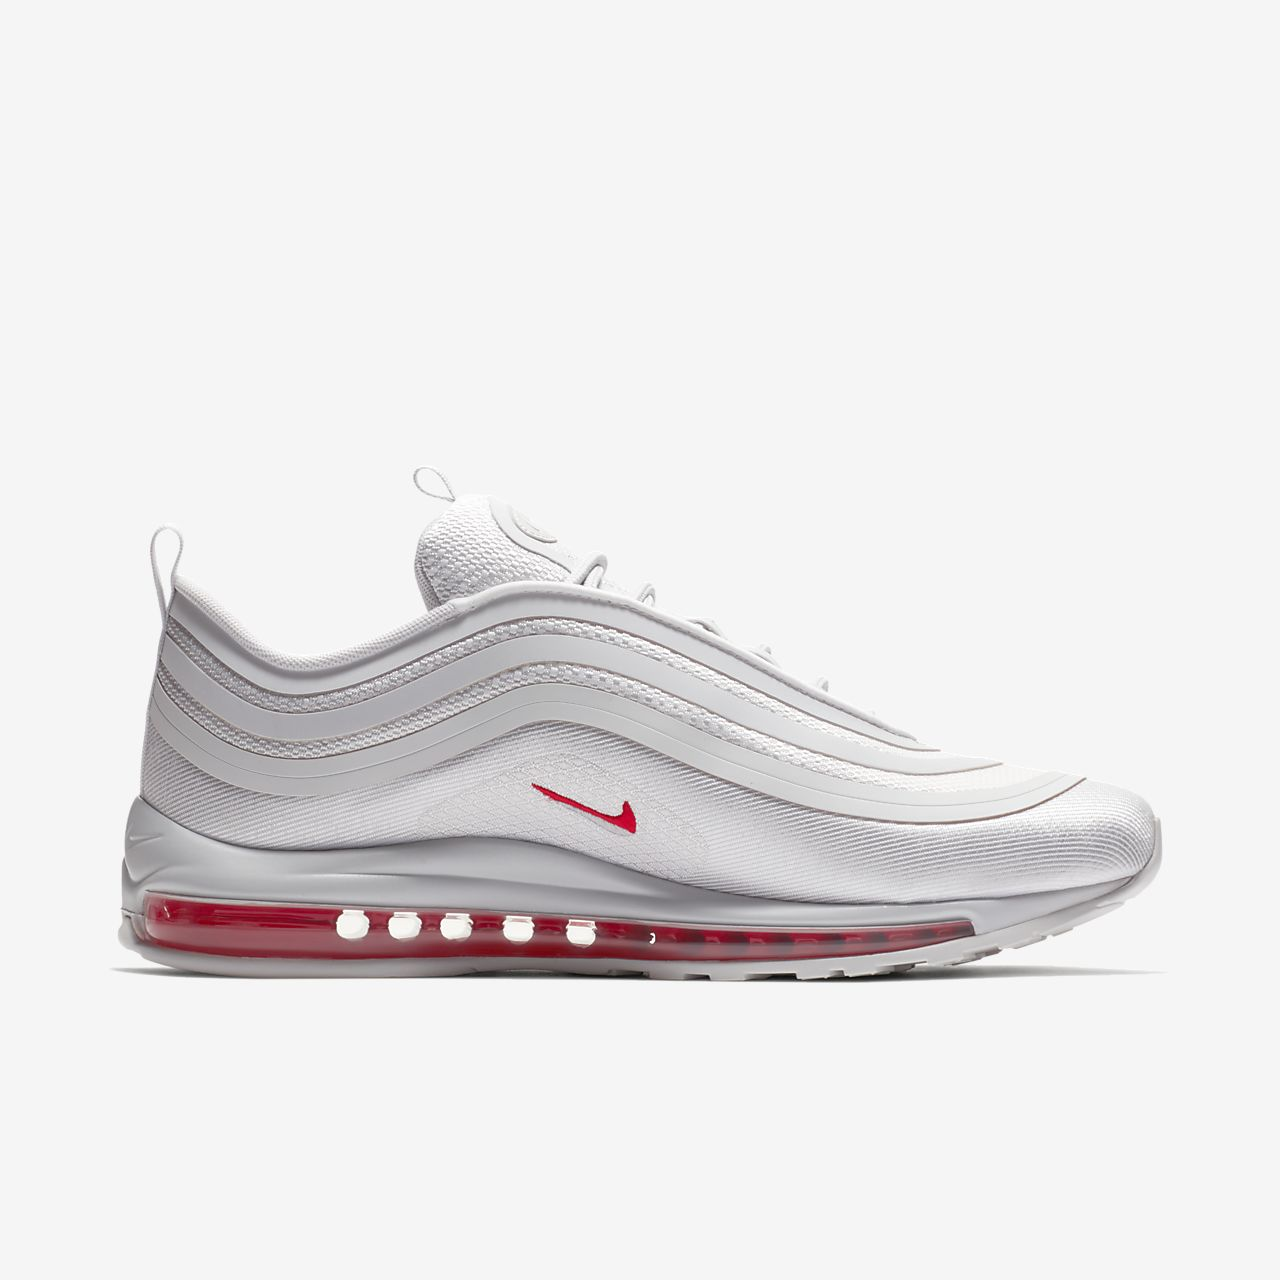 Nike Air Max 97 Solar White The Boombox